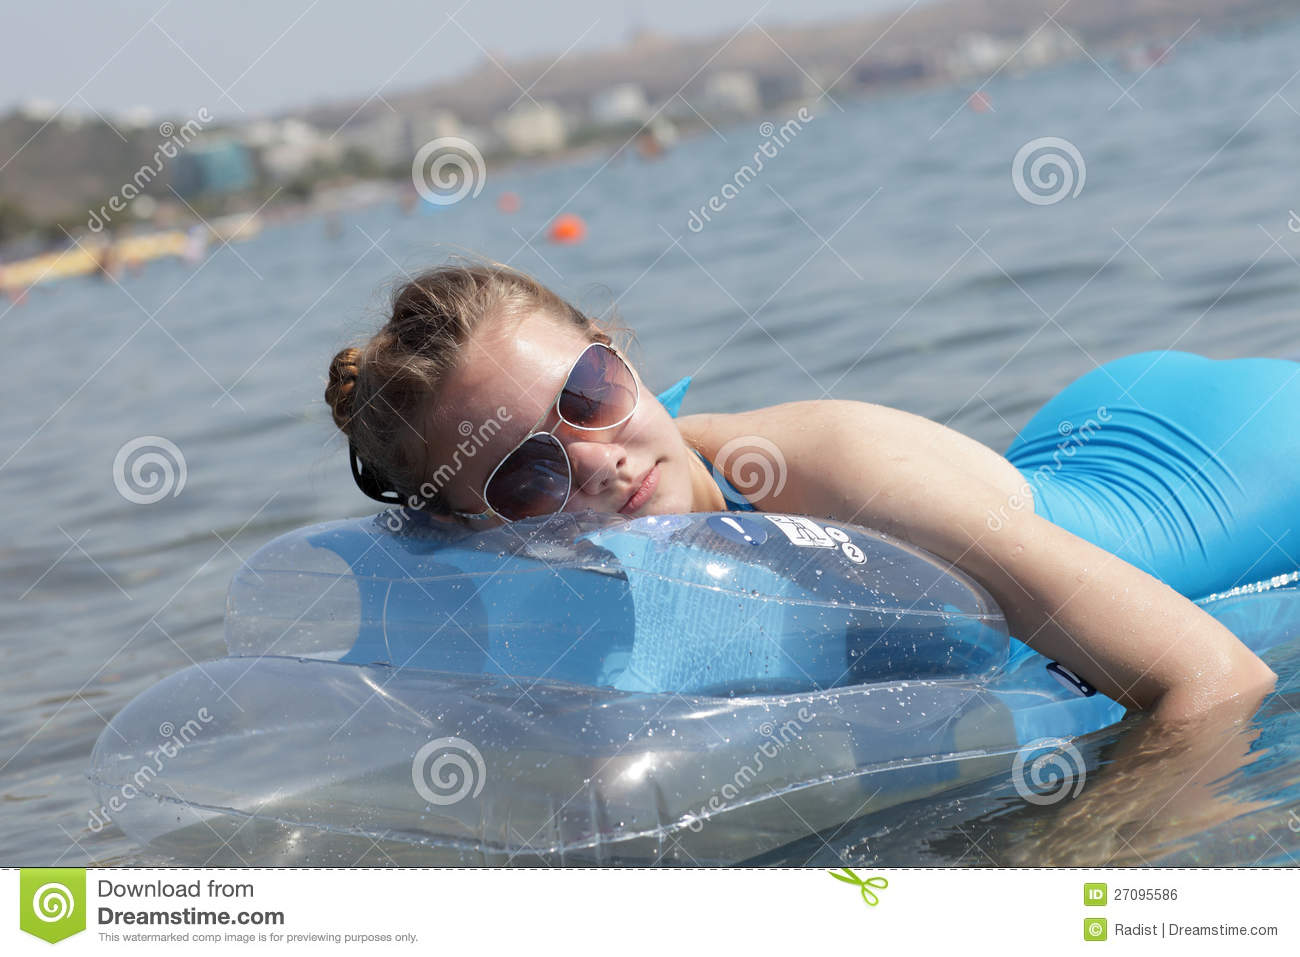 Girl On Inflatable Mattress Royalty Free Stock Image - Image: 27095586